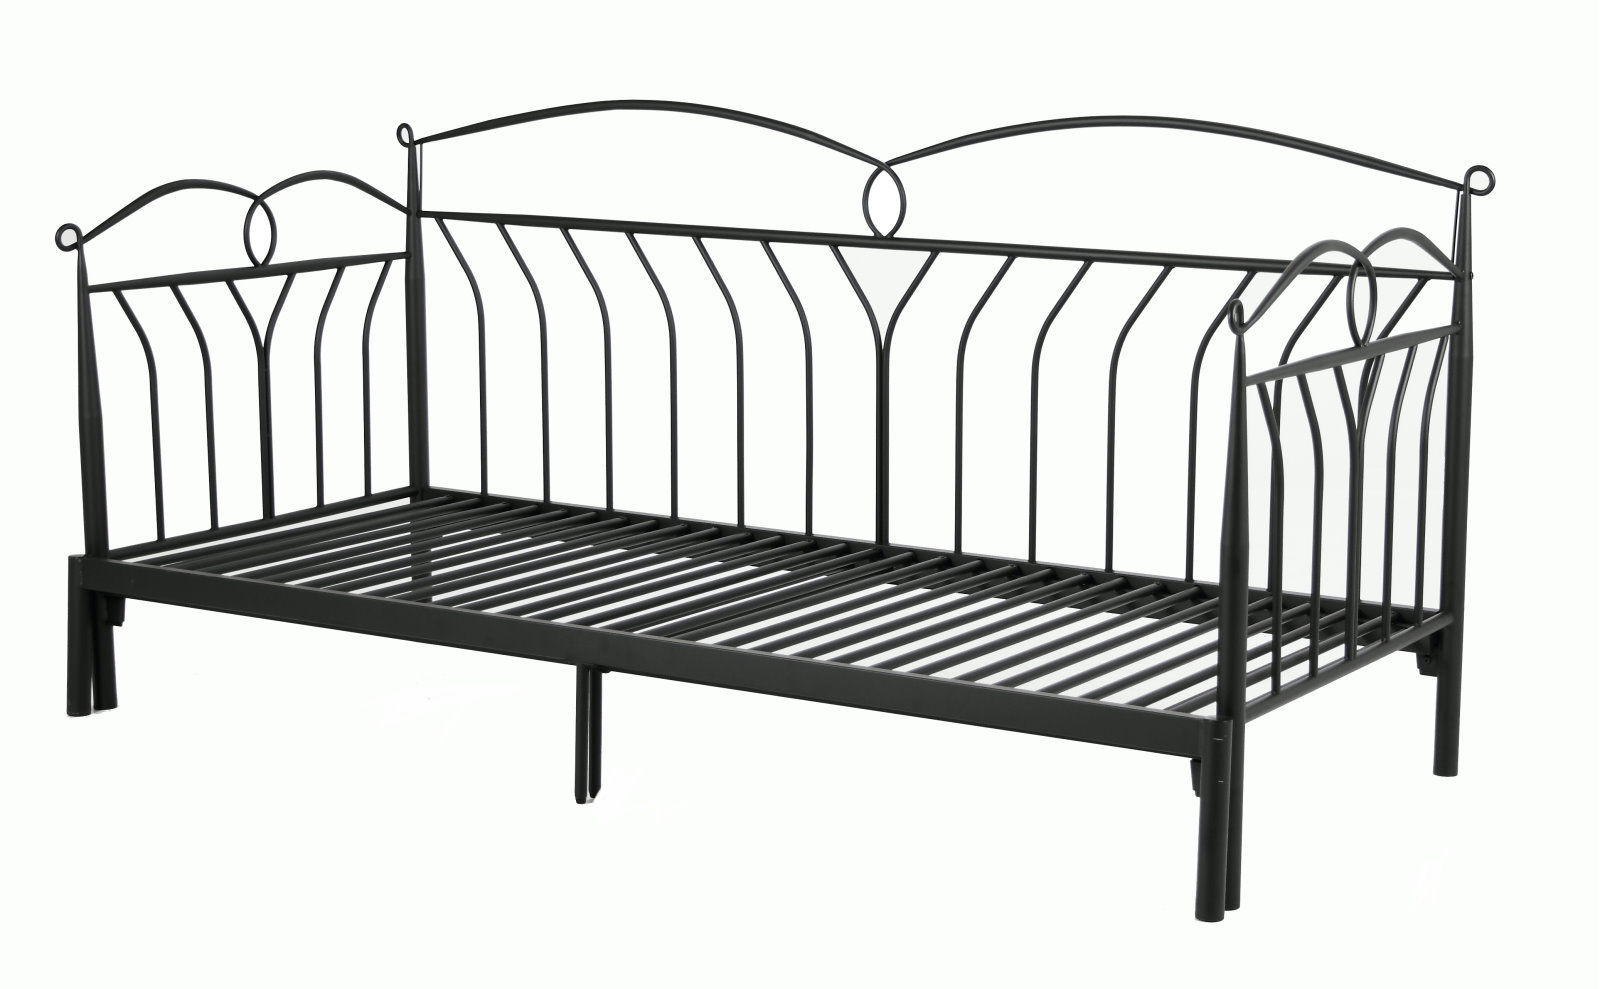 metallbett 90x200 schwarz gallery of metallbett ikea herrlich schwarz fantastisch x betten cm. Black Bedroom Furniture Sets. Home Design Ideas